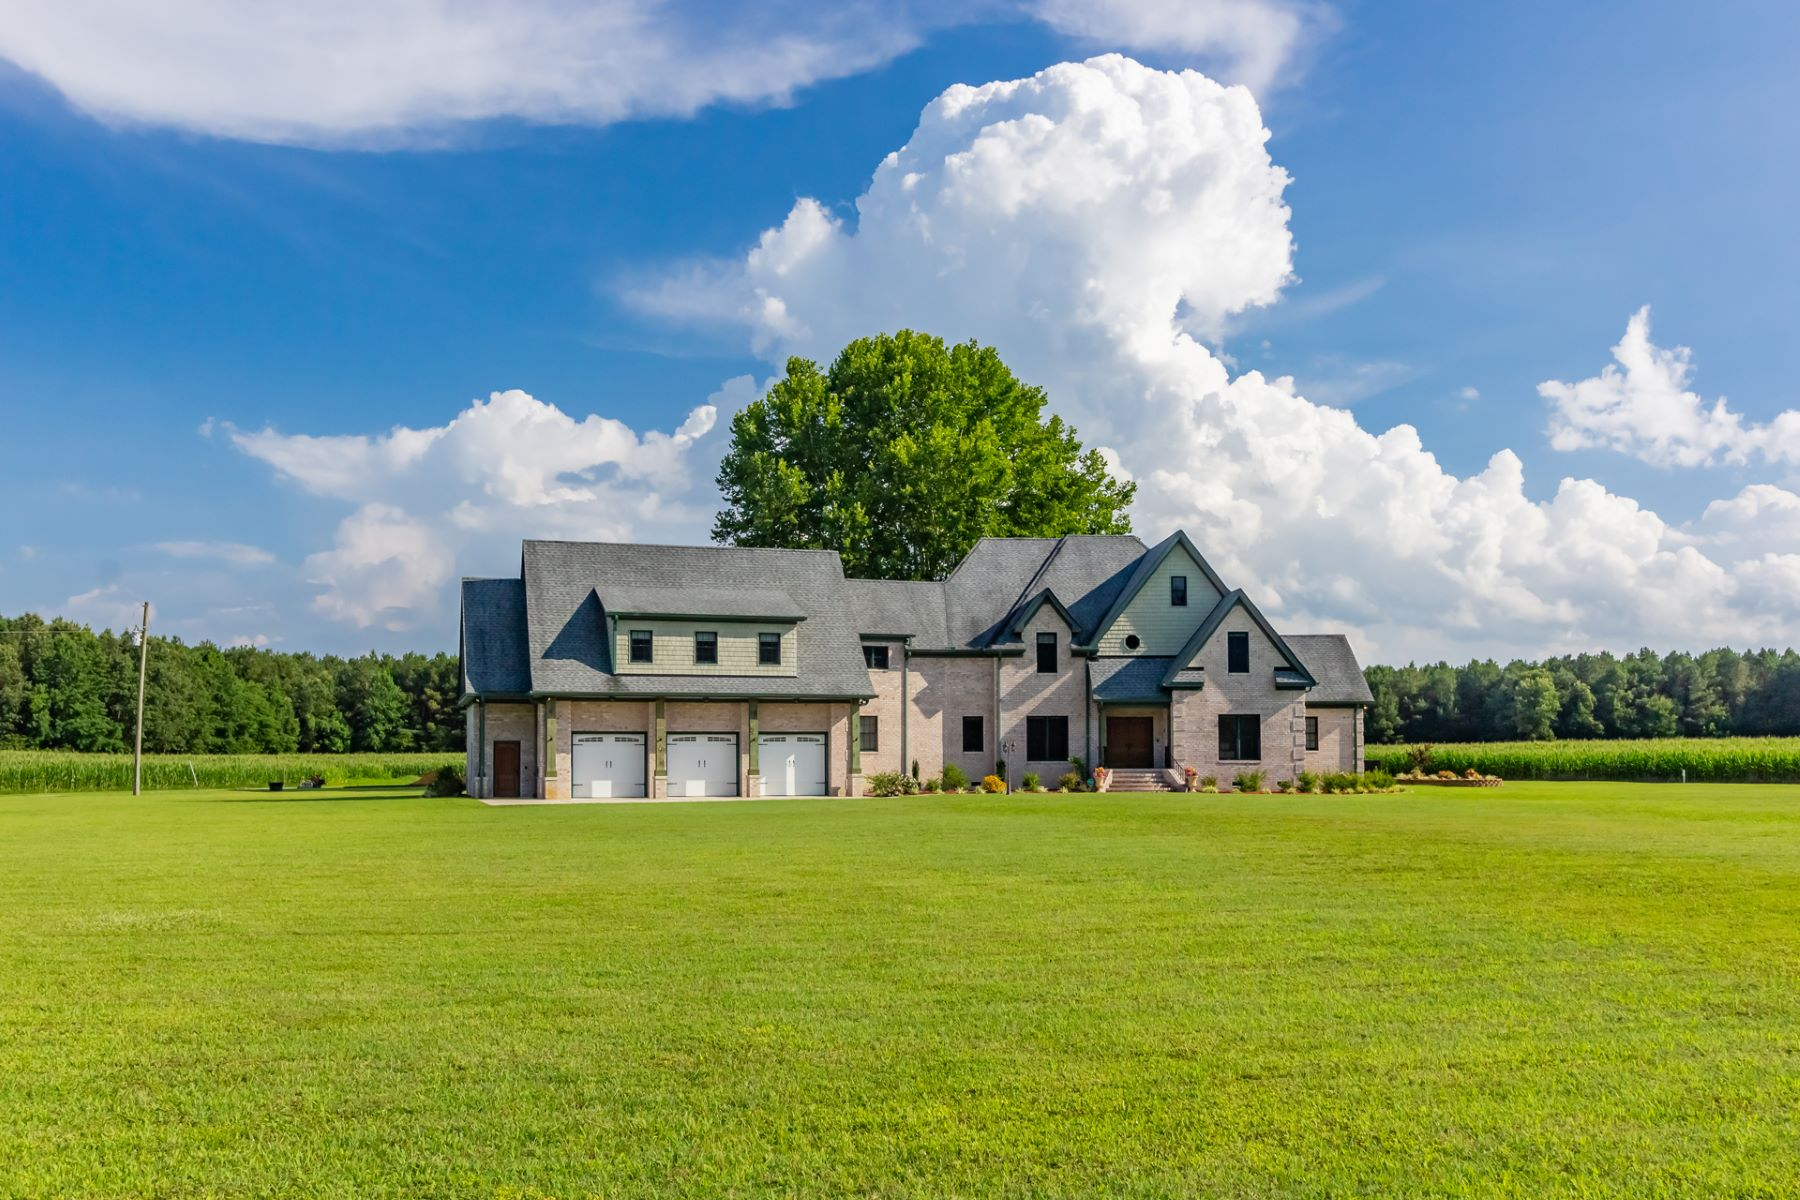 Single Family Homes for Sale at Southern Suffolk 4225 Deer Forest Road Suffolk, Virginia 23434 United States